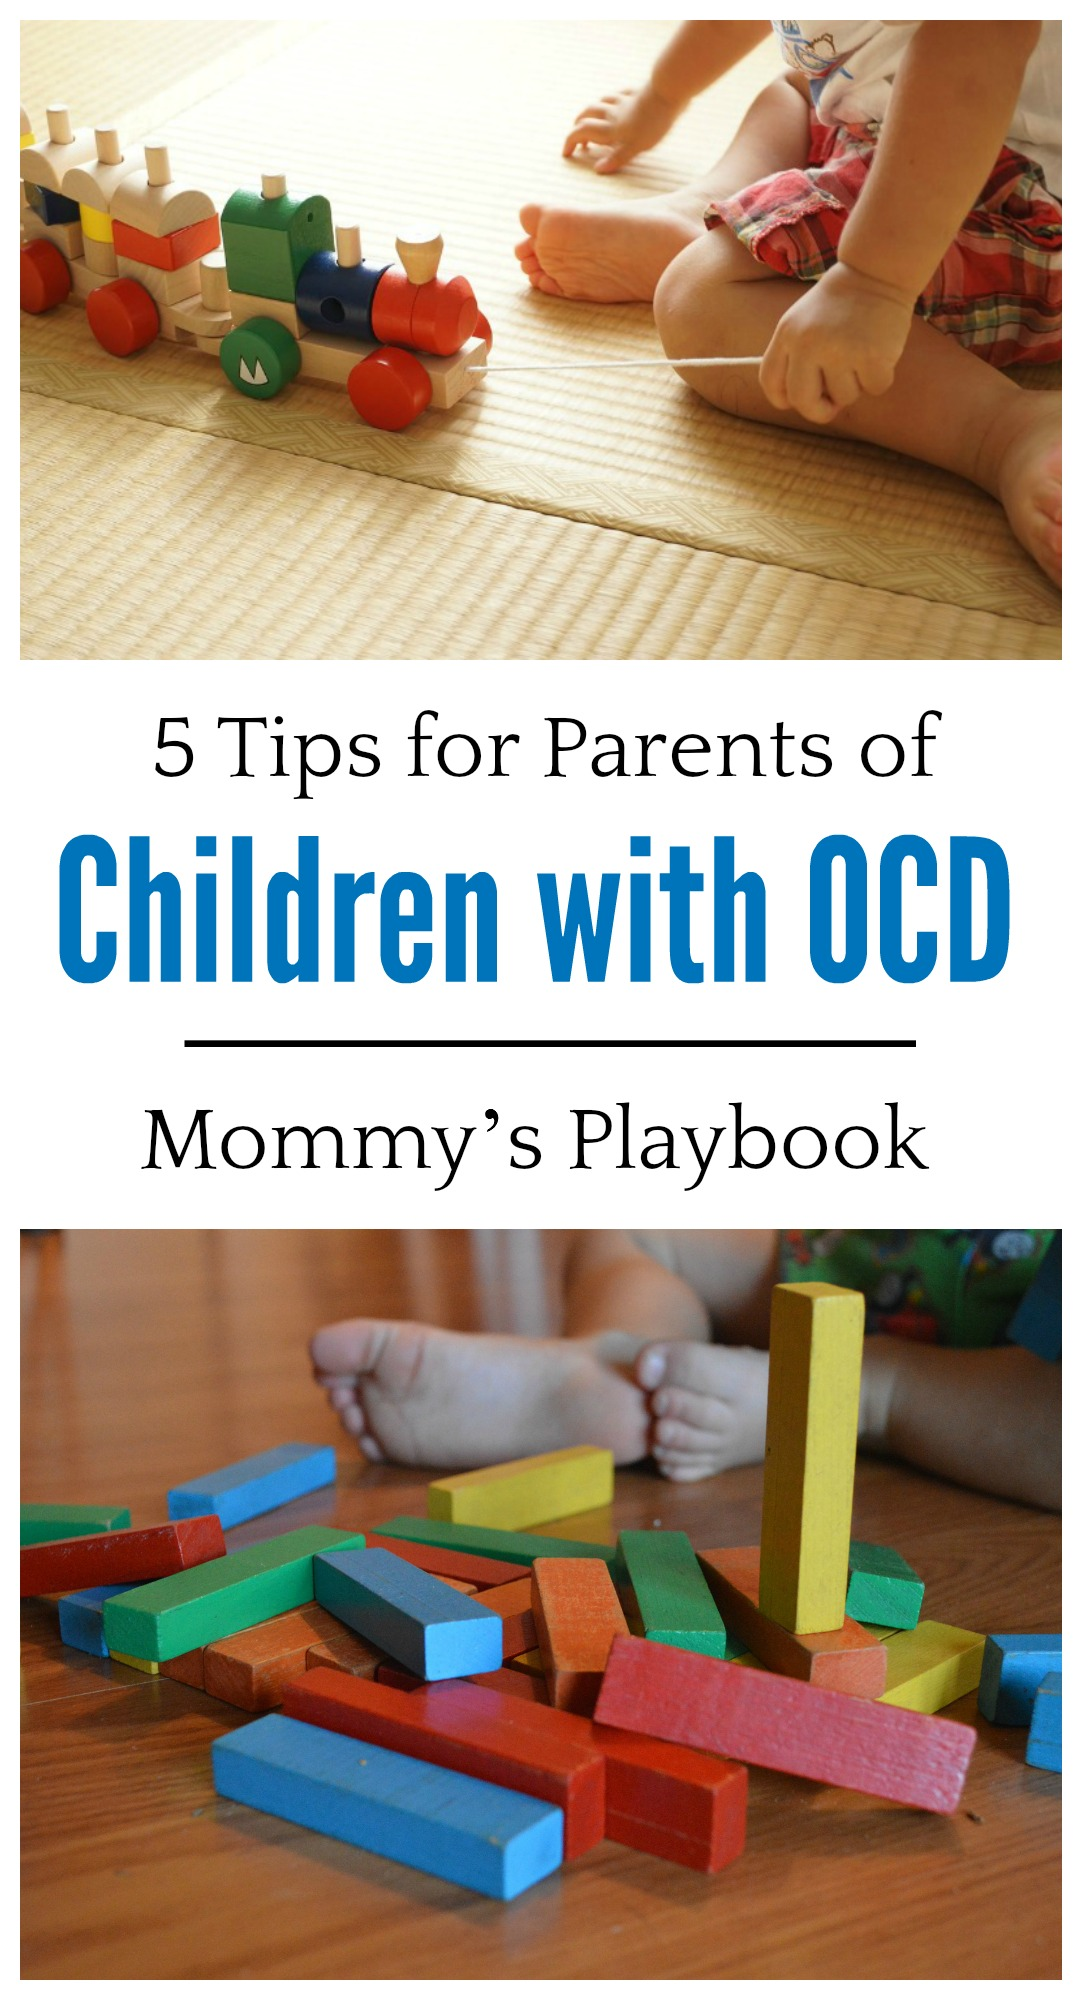 Tips for Parents of Children with OCD